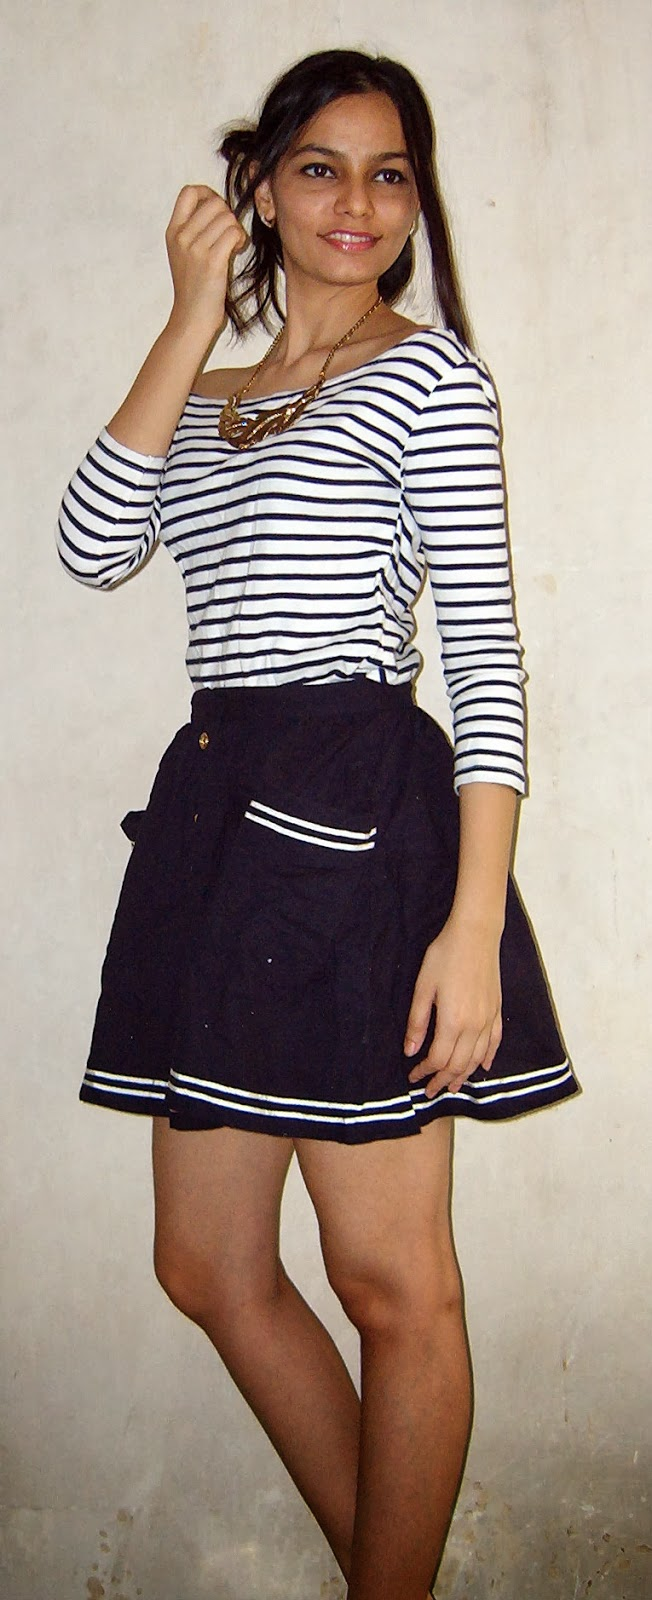 mumbai streetstyle, indian fashion blogger, nautical look, stripes and navy, navy blue look, look for less, what to buy in mumbai, street shopping